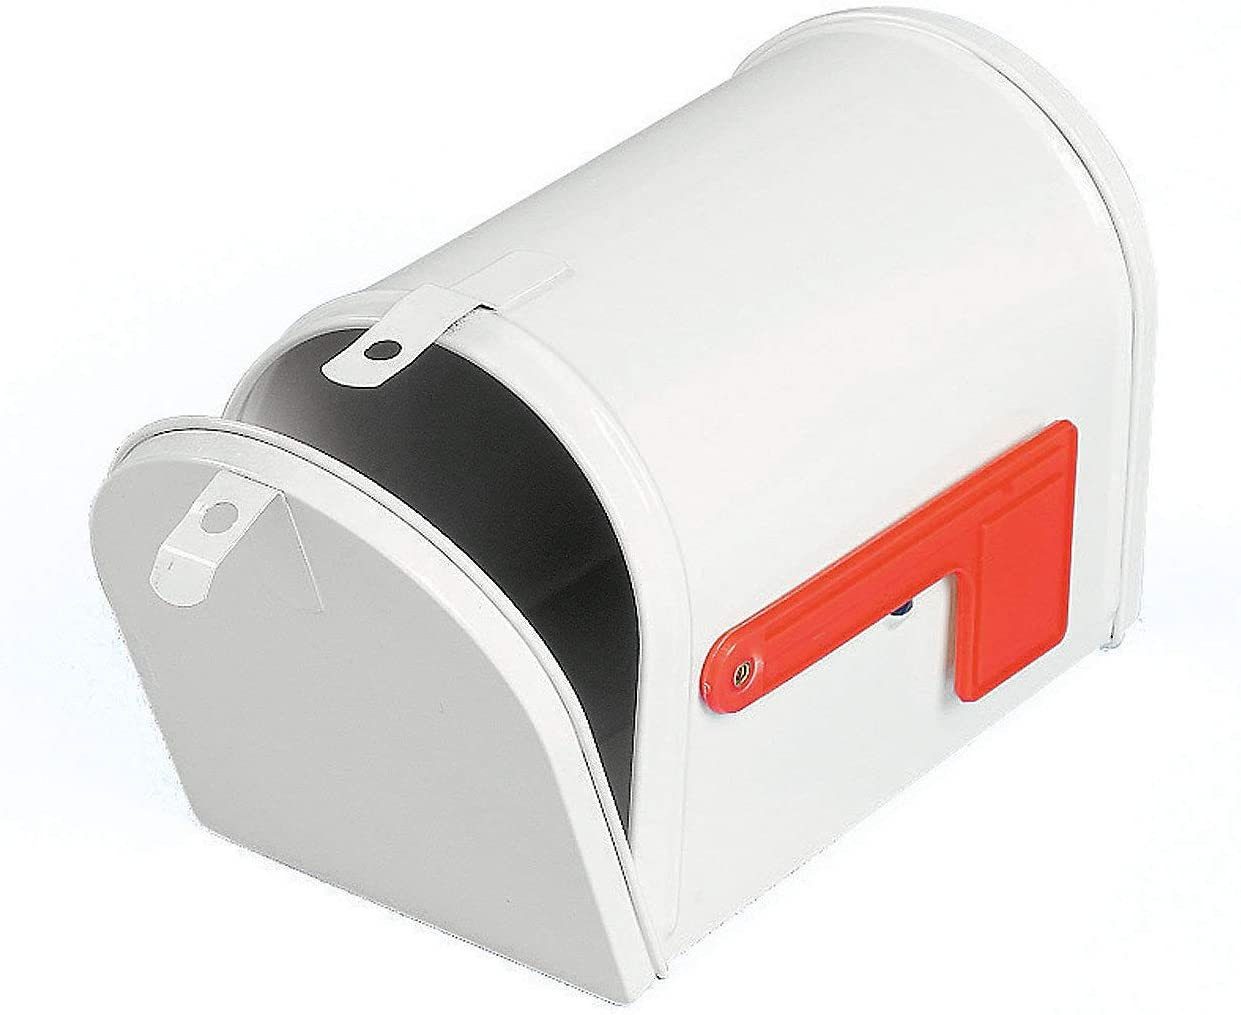 White Tinplate Mailbox Toy - Great for Kids Crafts and Decorating Activities